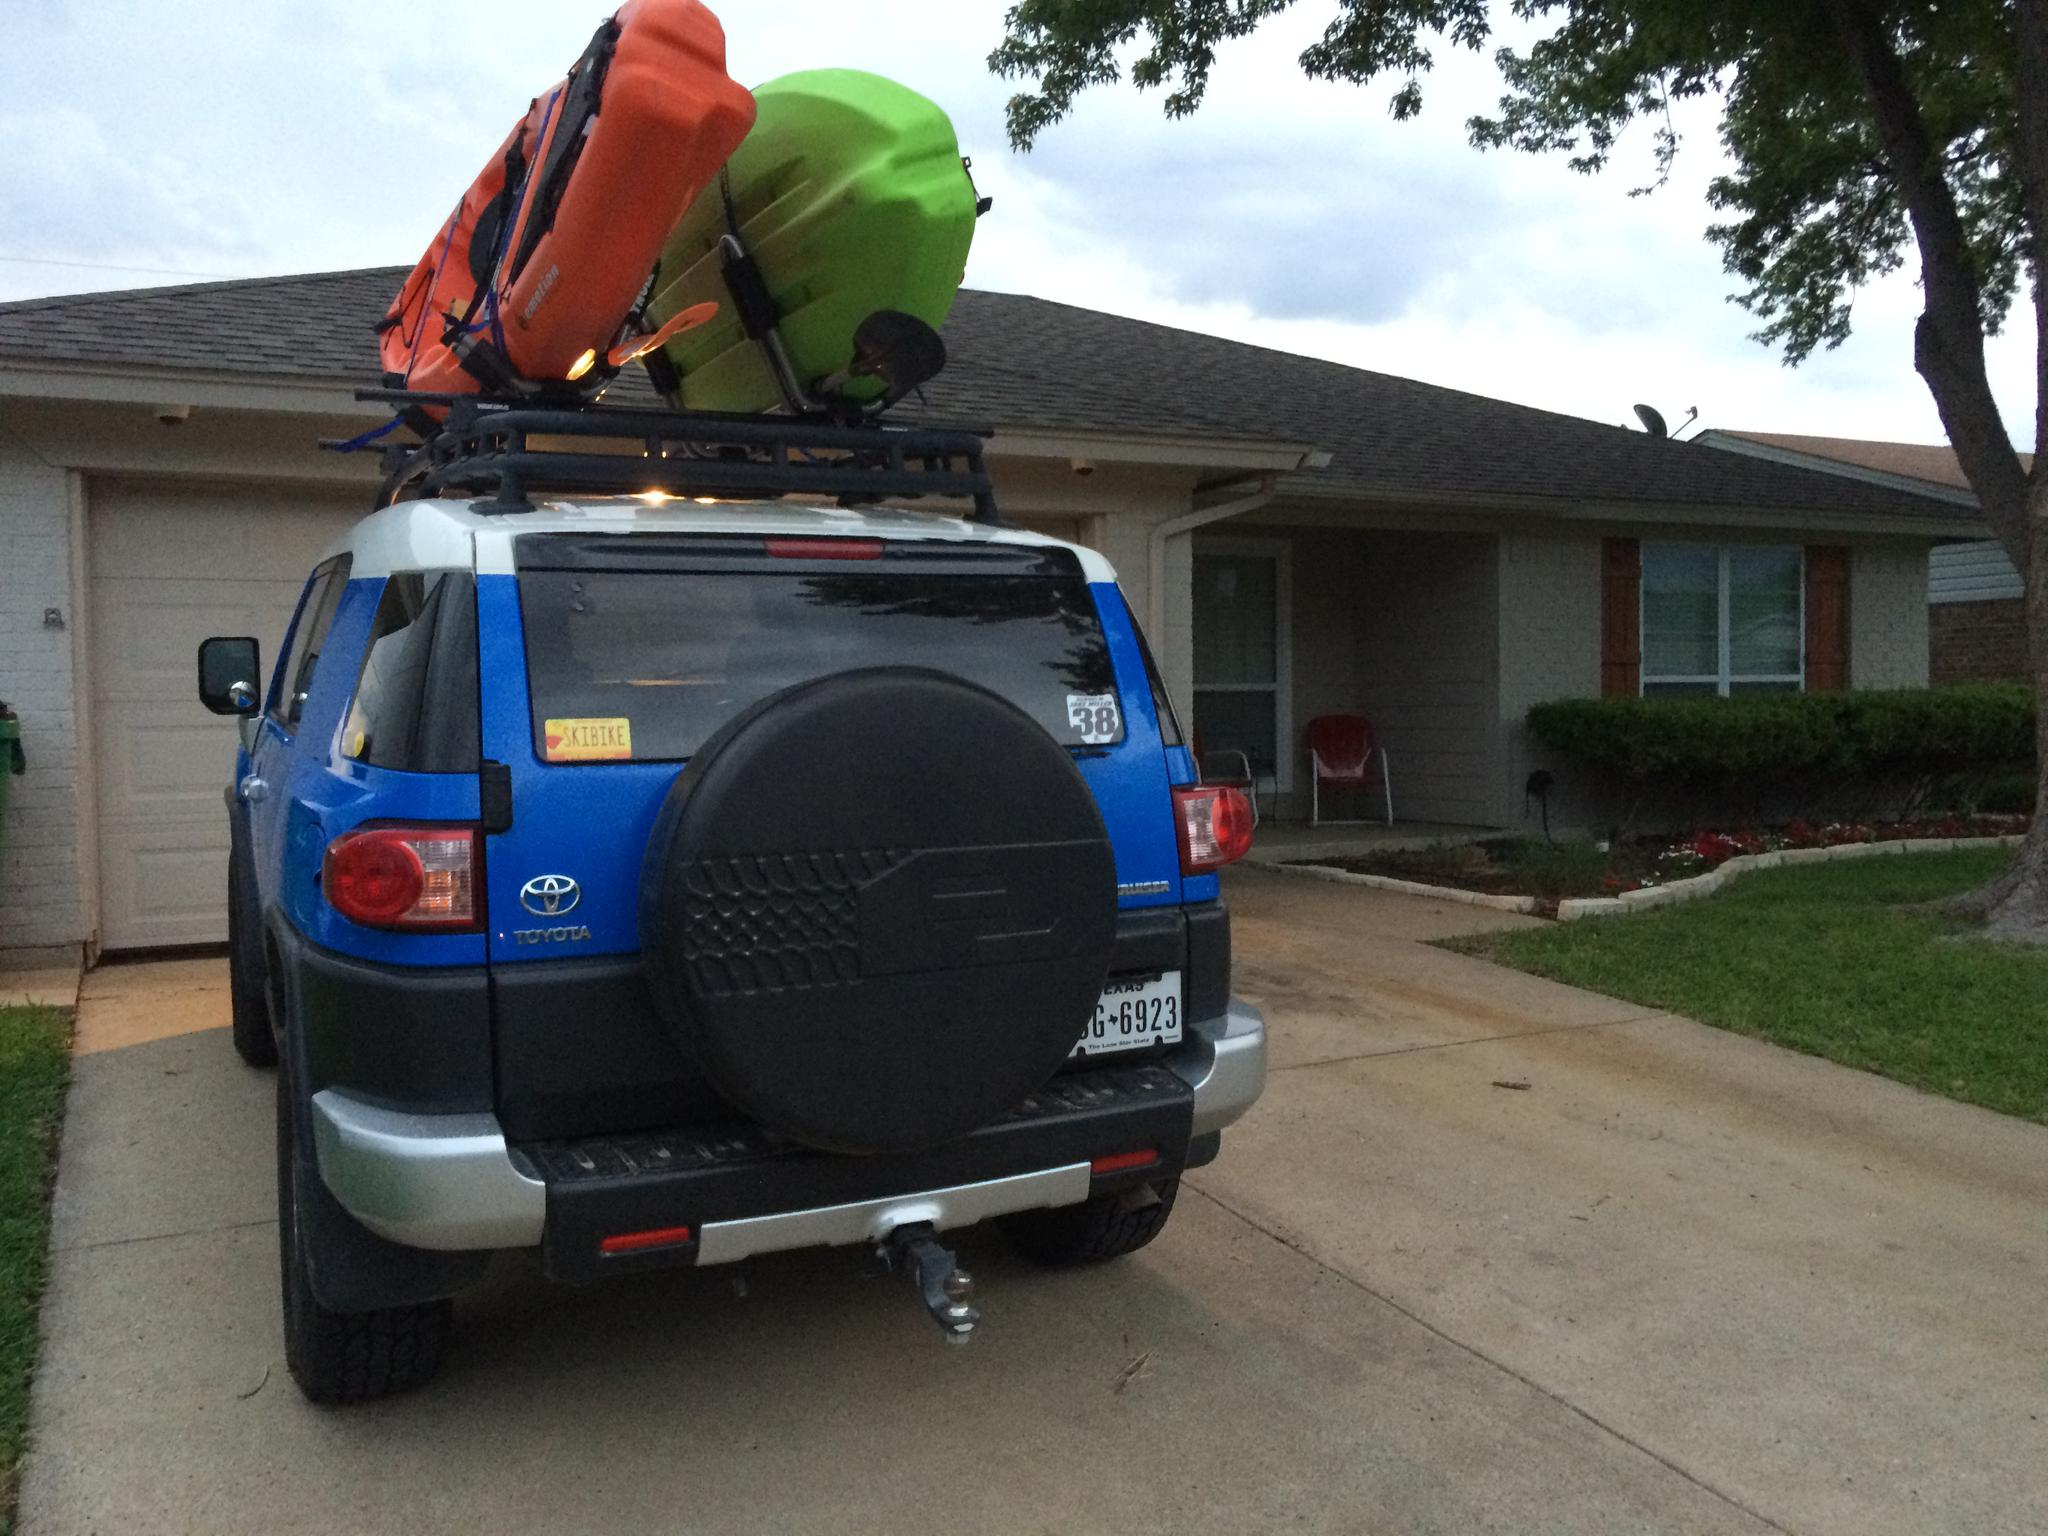 vs hull etrailer thule com rack stacker kayak comparison the port a compare